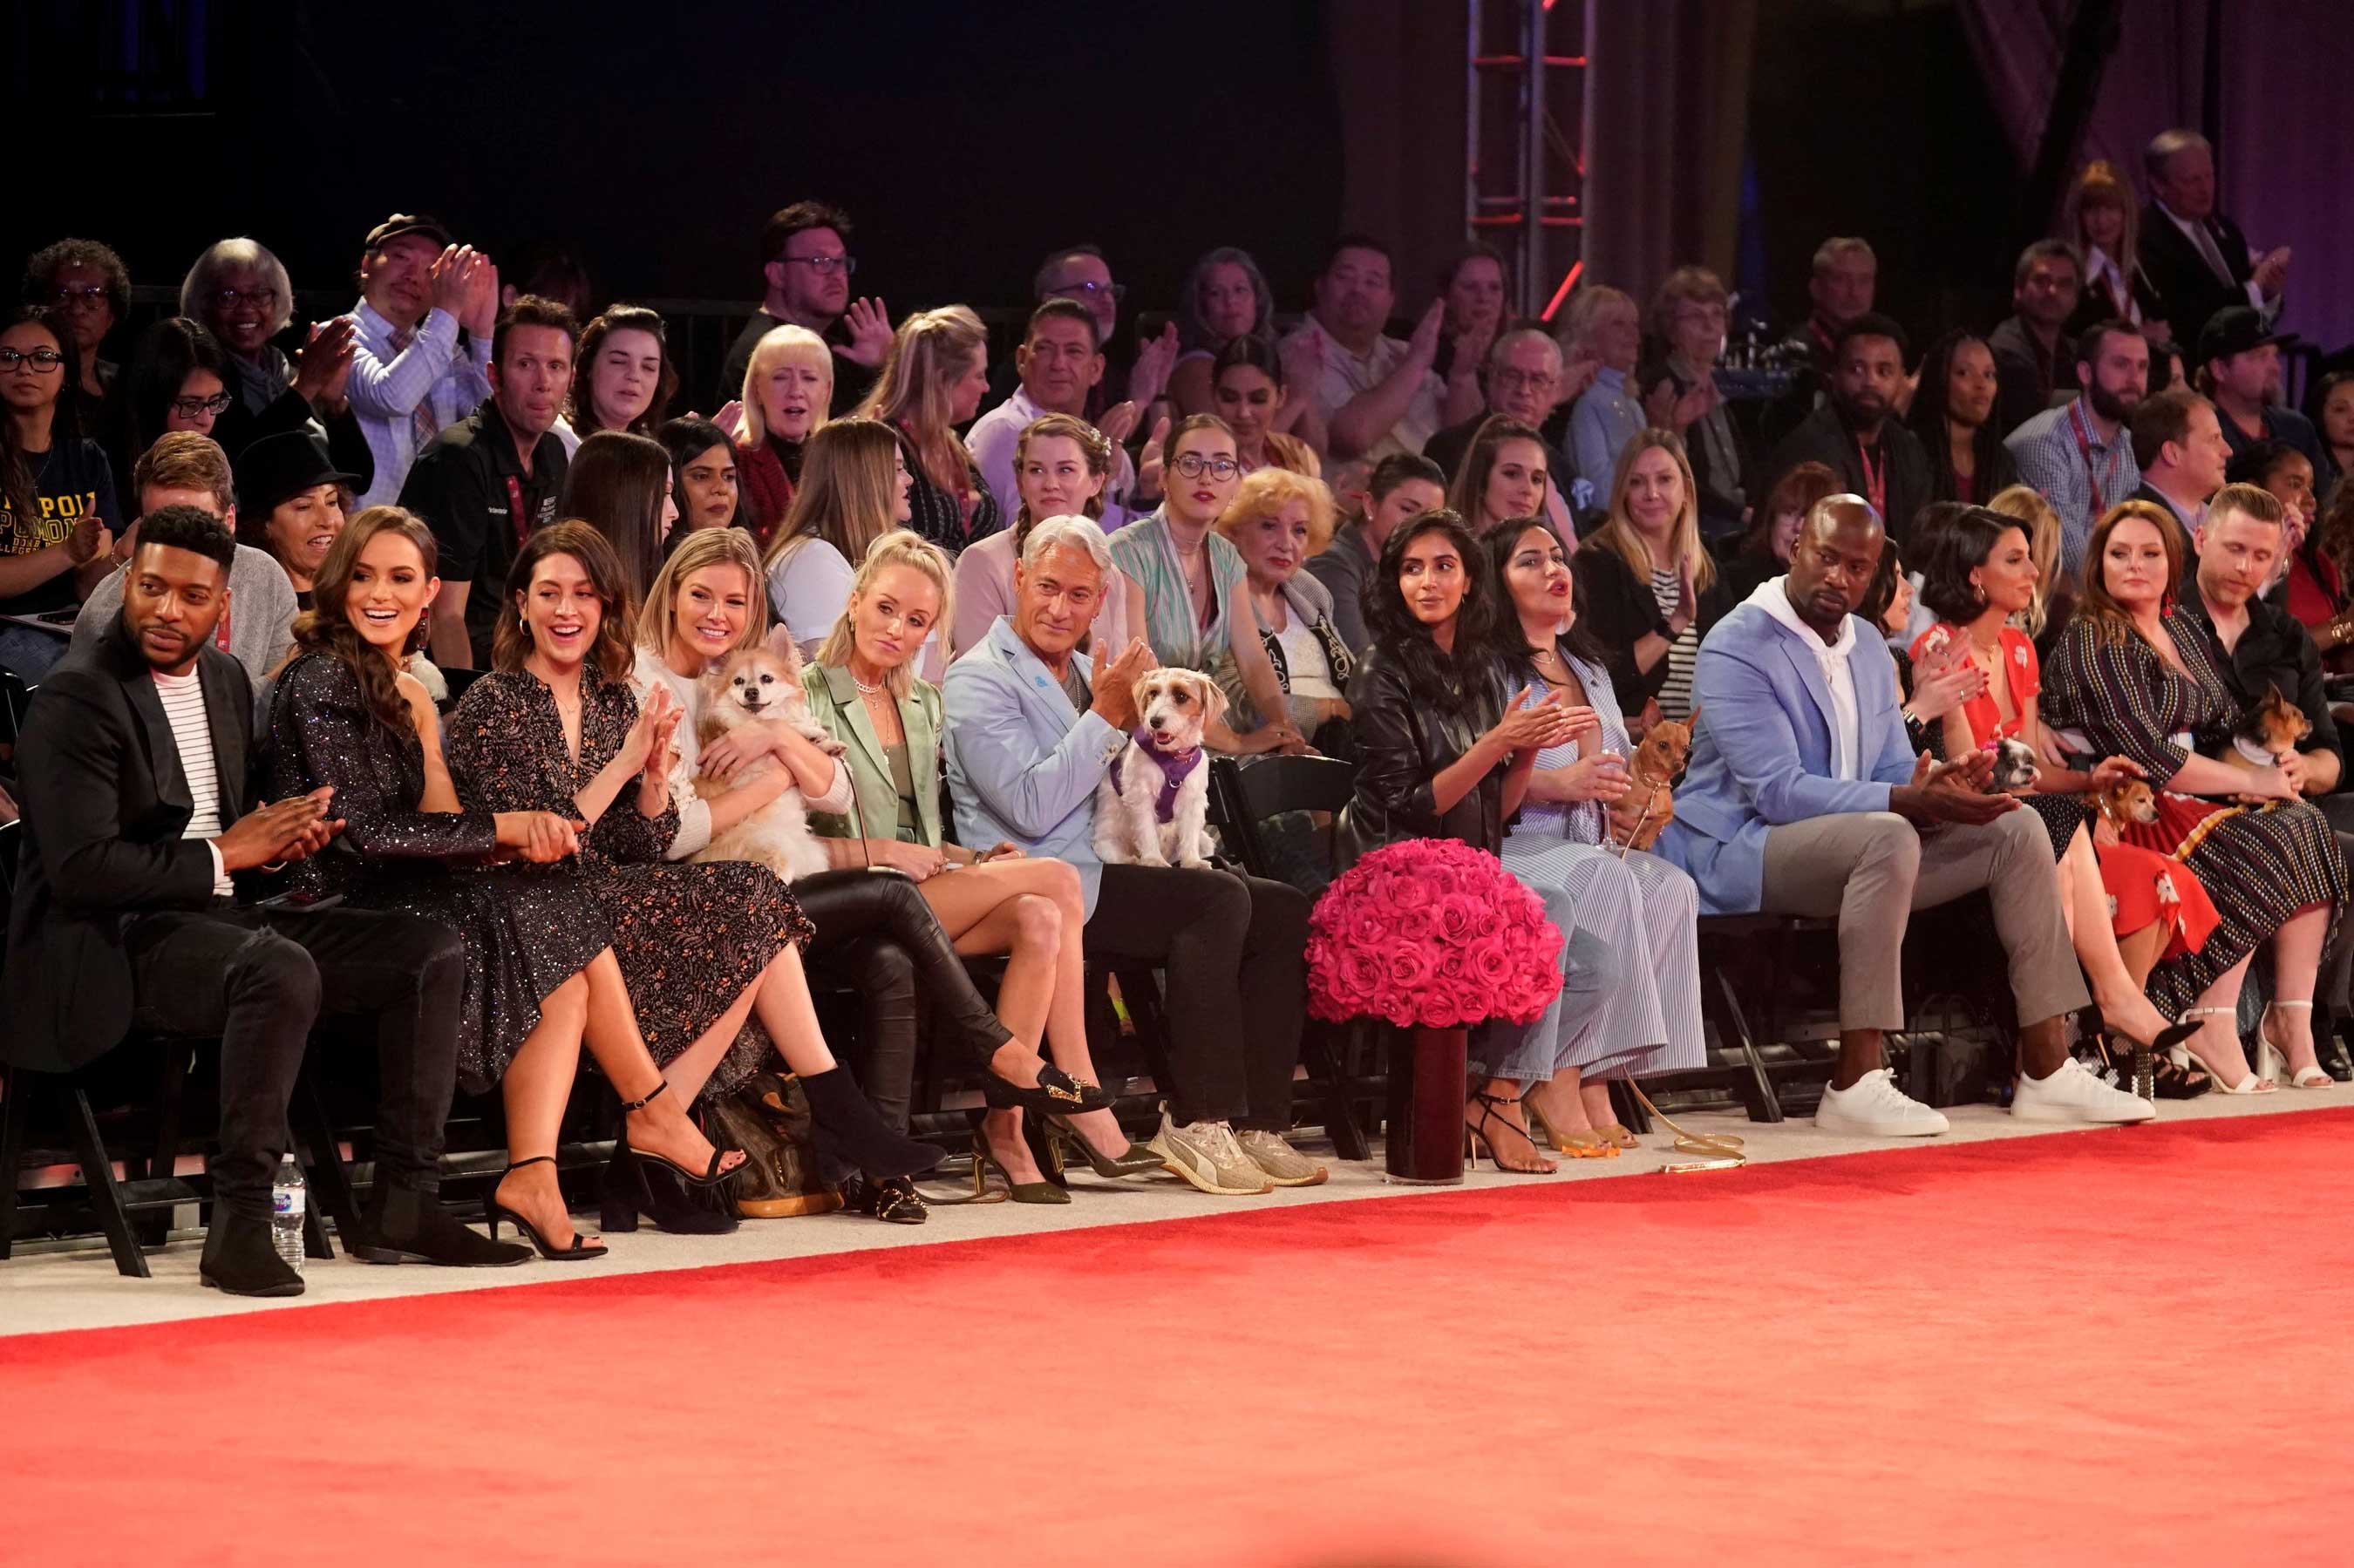 Celebs like Doug the Pug, Olivia Culpo, Nastia Liukin, Greg Louganis, Brian Baumgartner, Akbar Gbajabiamila and Jade Catta Preta will be ring side to cheer on their favorite breeds as the group winners walk the red-carpet runway to vie for Best in Show at the fourth-annual Beverly Hills Dog Show Presented by Purina. The show was recorded in February 2020 before social distancing measures were in place.